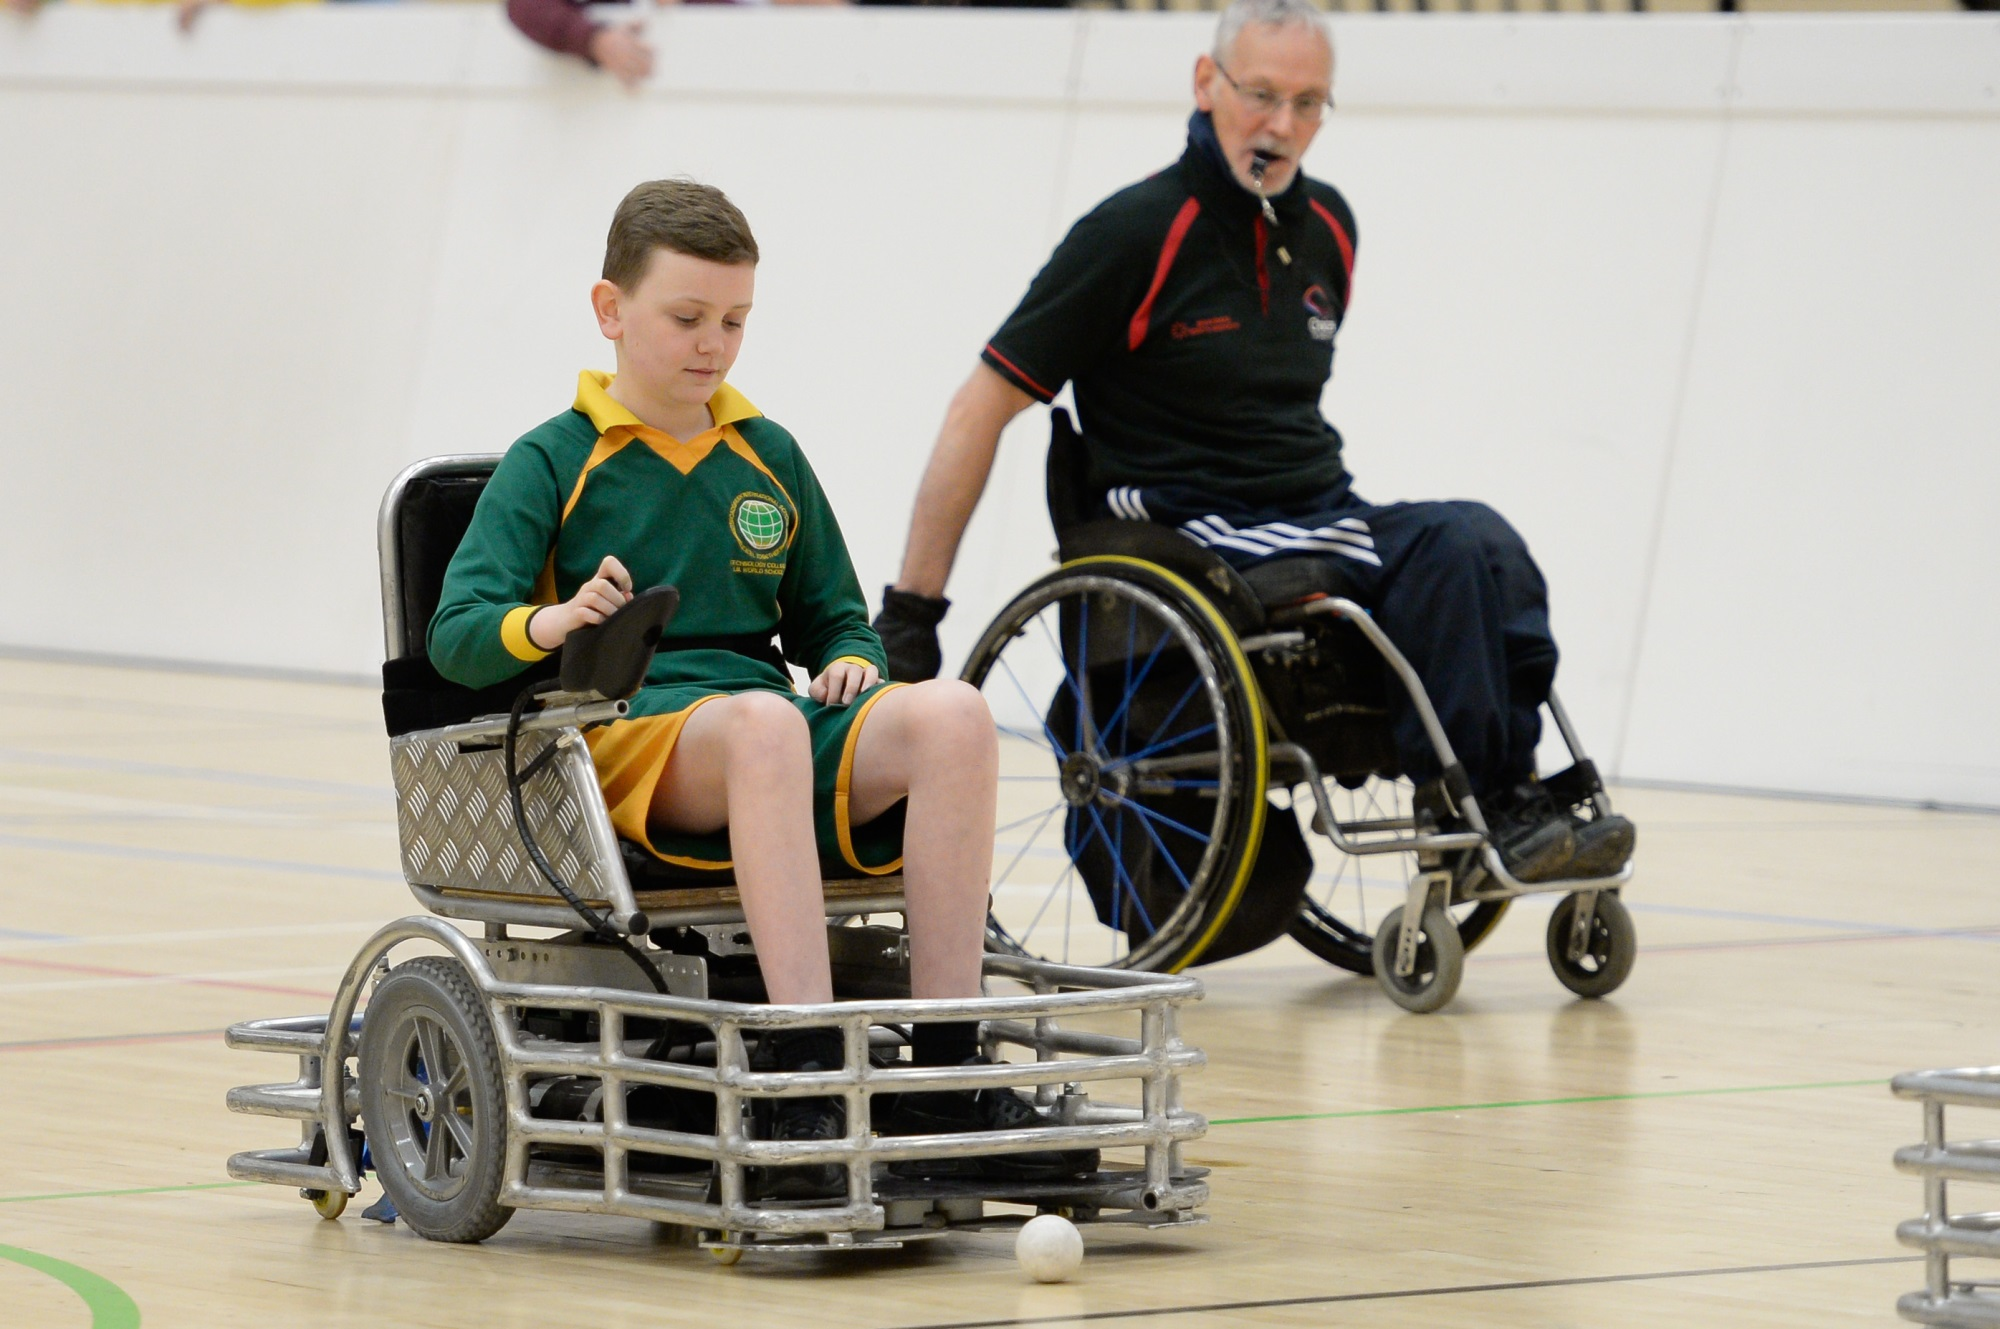 A child enjoys some ball games in their wheelchair in a sports hall